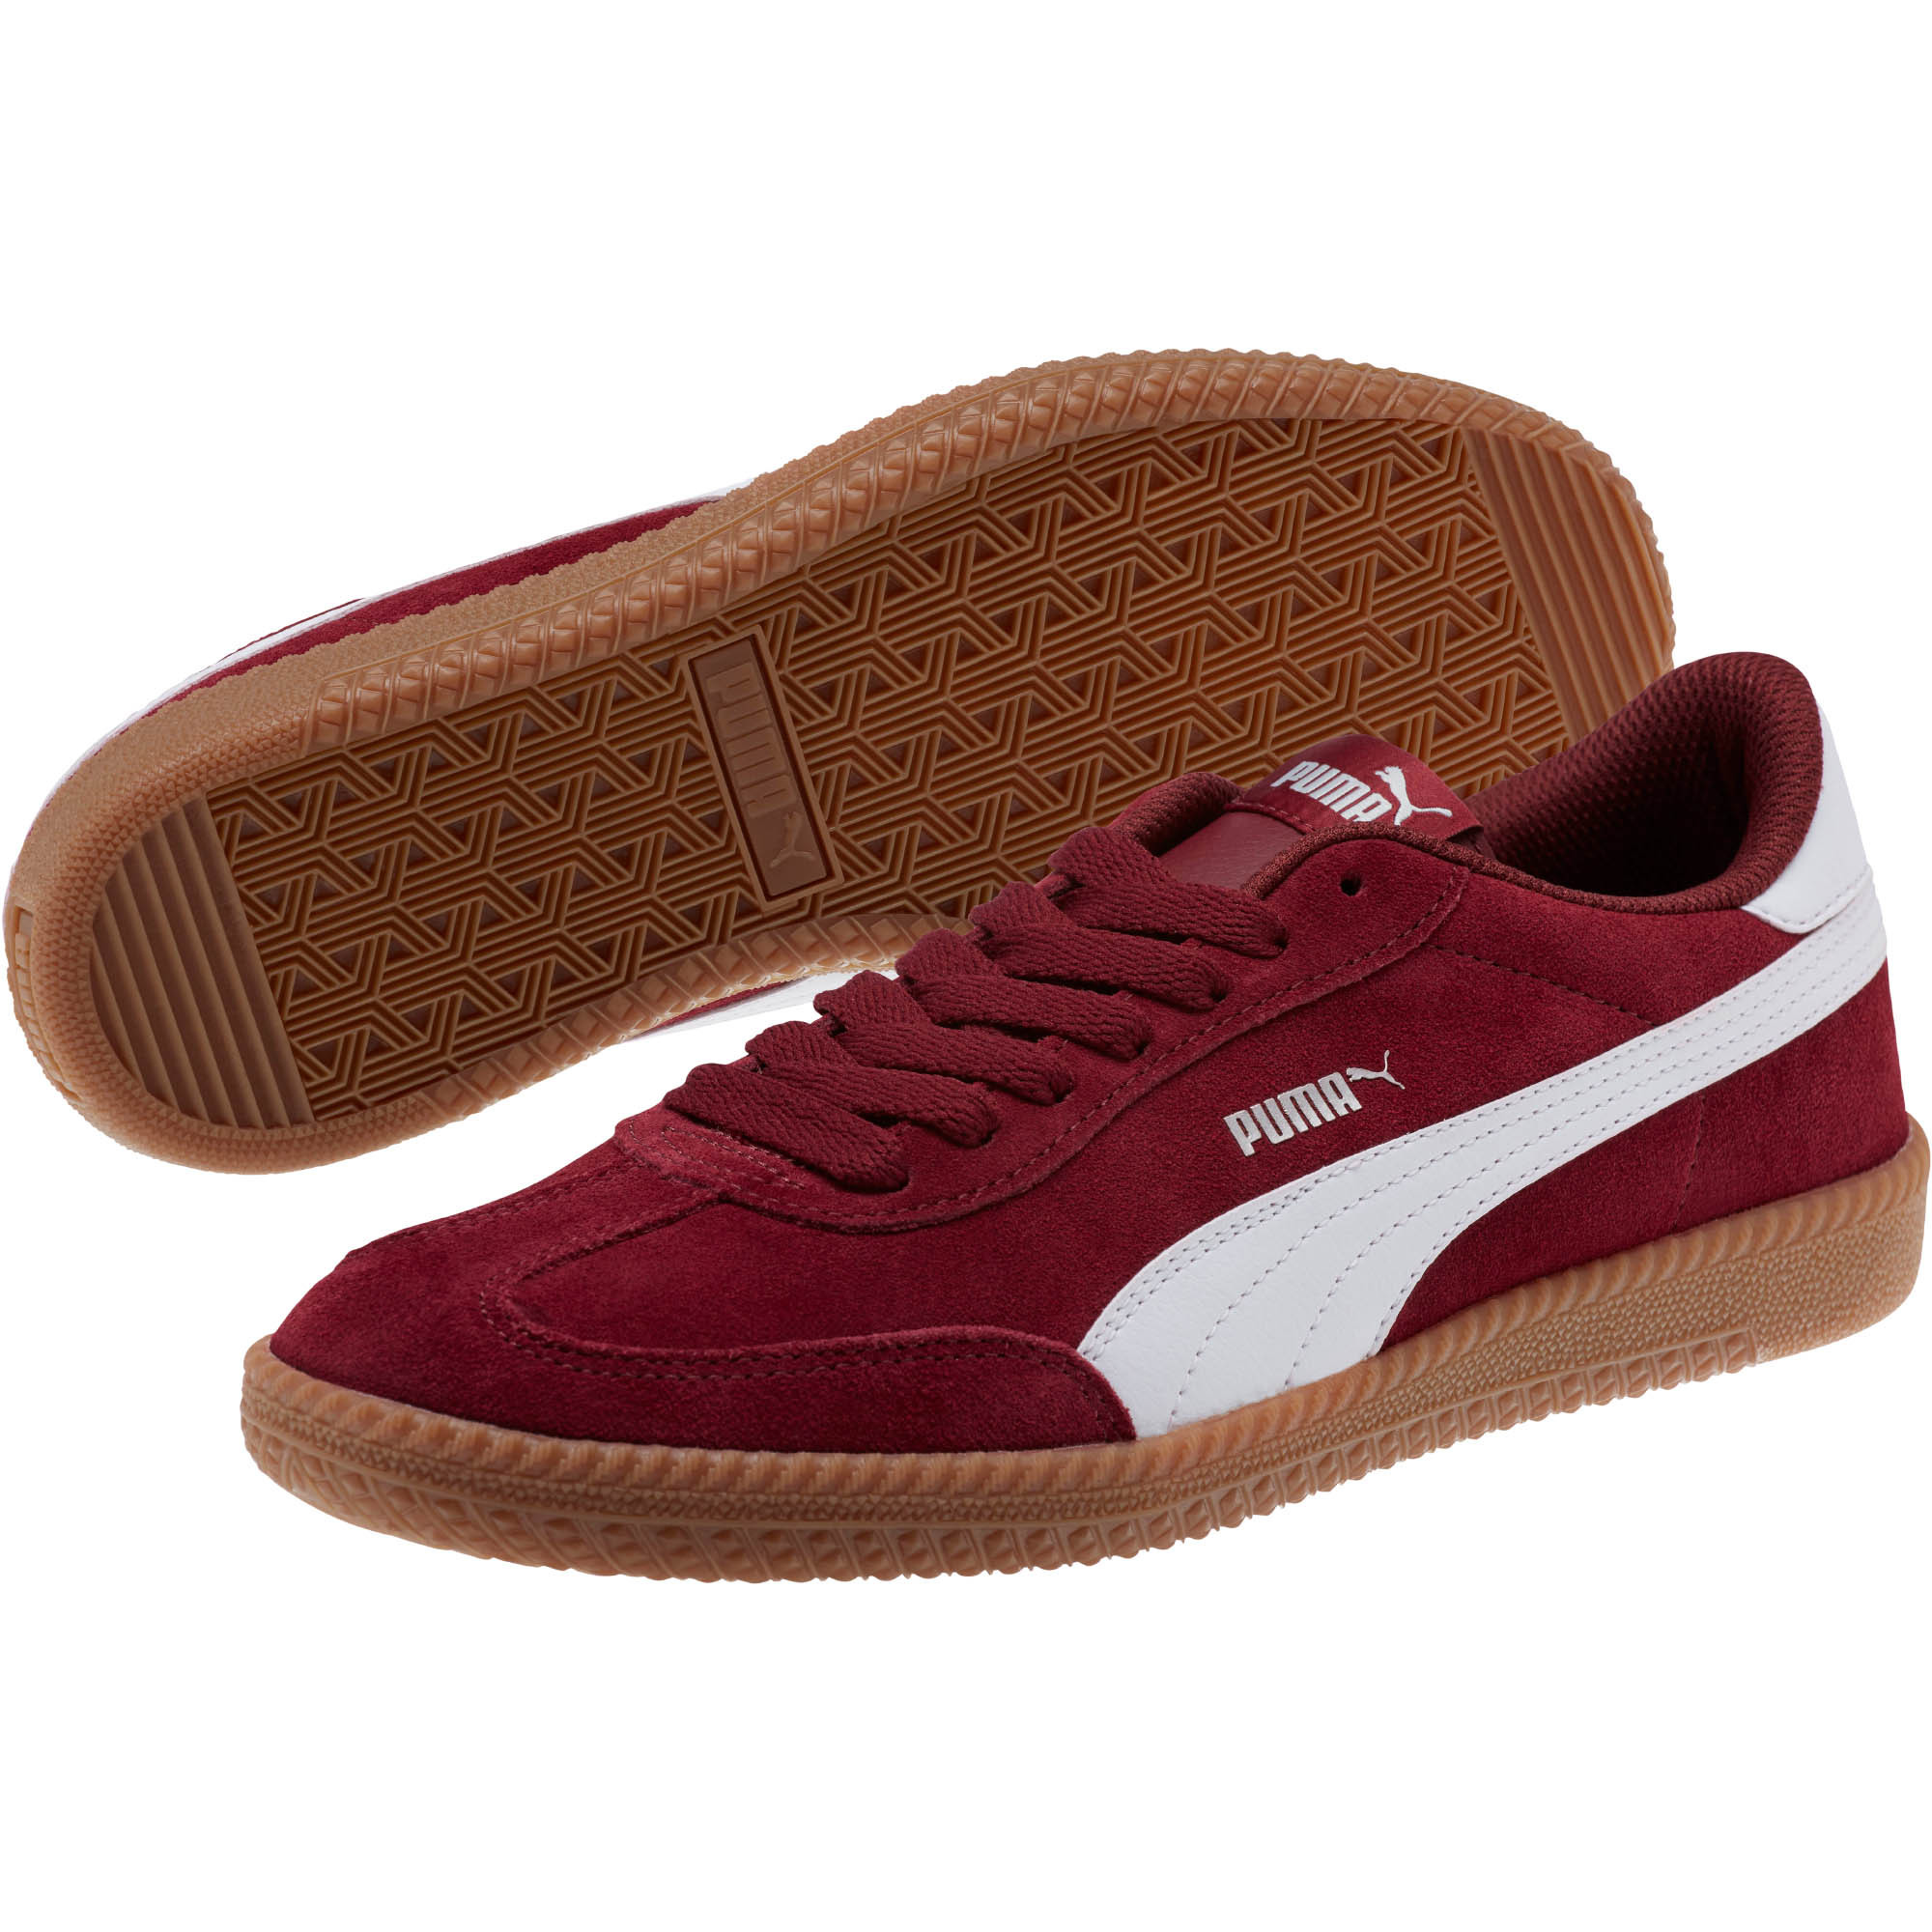 PUMA-Astro-Cup-Suede-Sneakers-Men-Shoe-Basics thumbnail 15